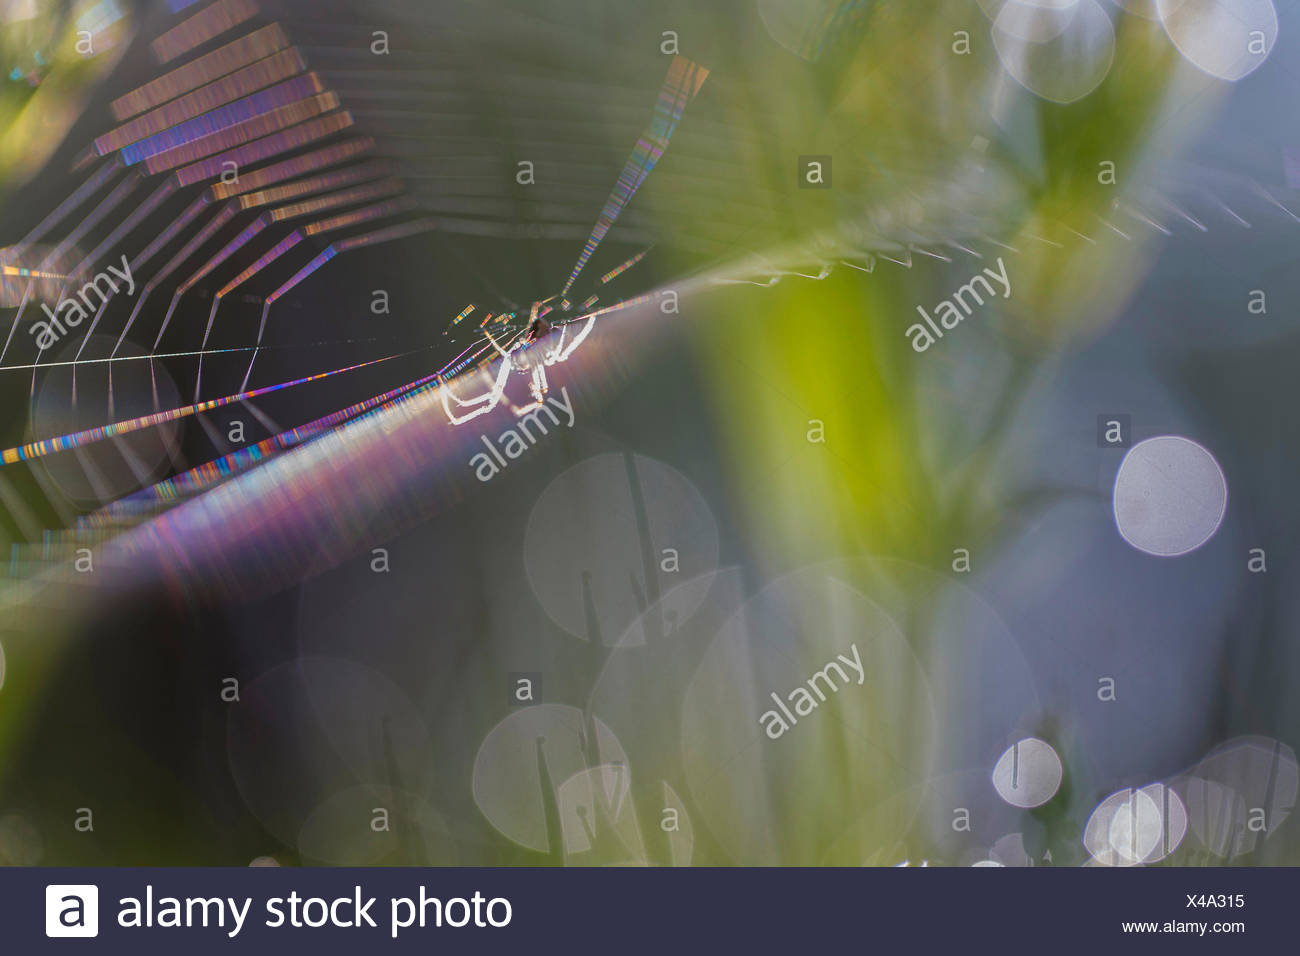 spider web with spider in backlight, Germany, Baden-Wuerttemberg - Stock Image